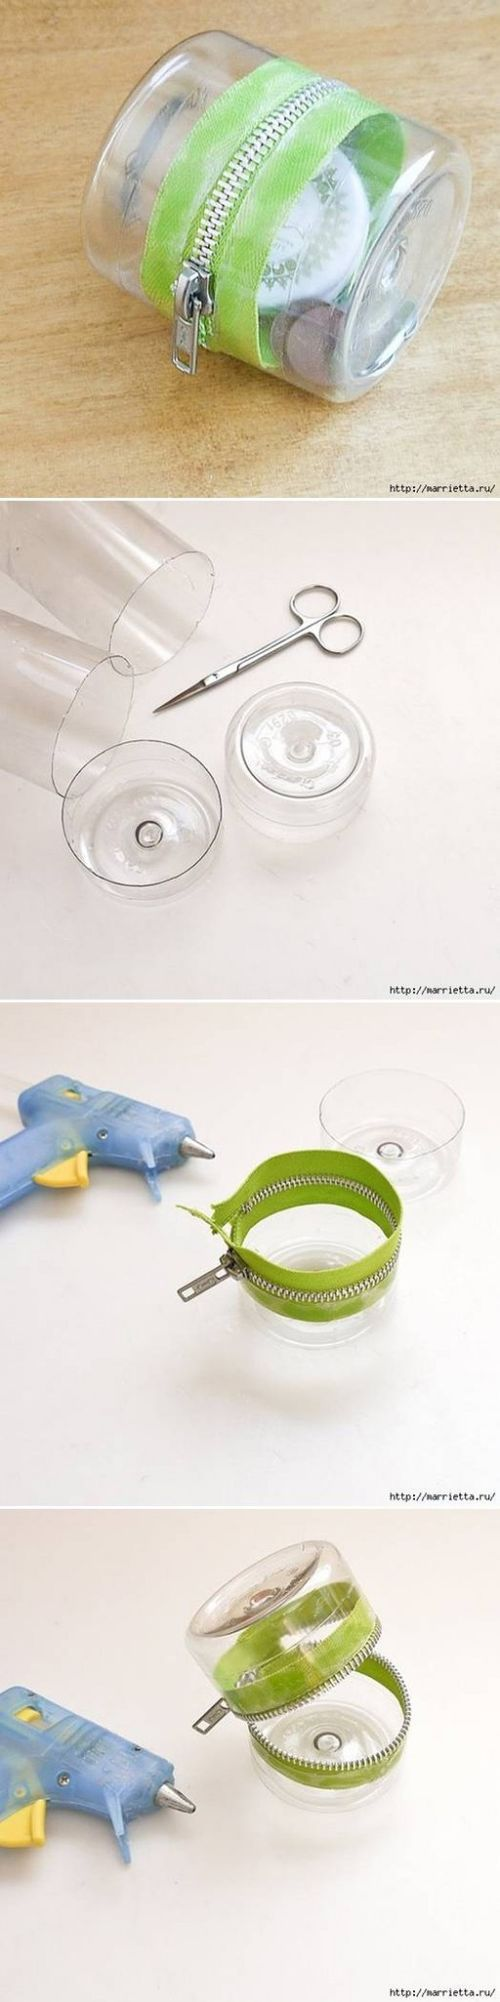 How to make Simple Plastic water Bottle Storage Box step by step DIY tutorial instructions / How To Instructions